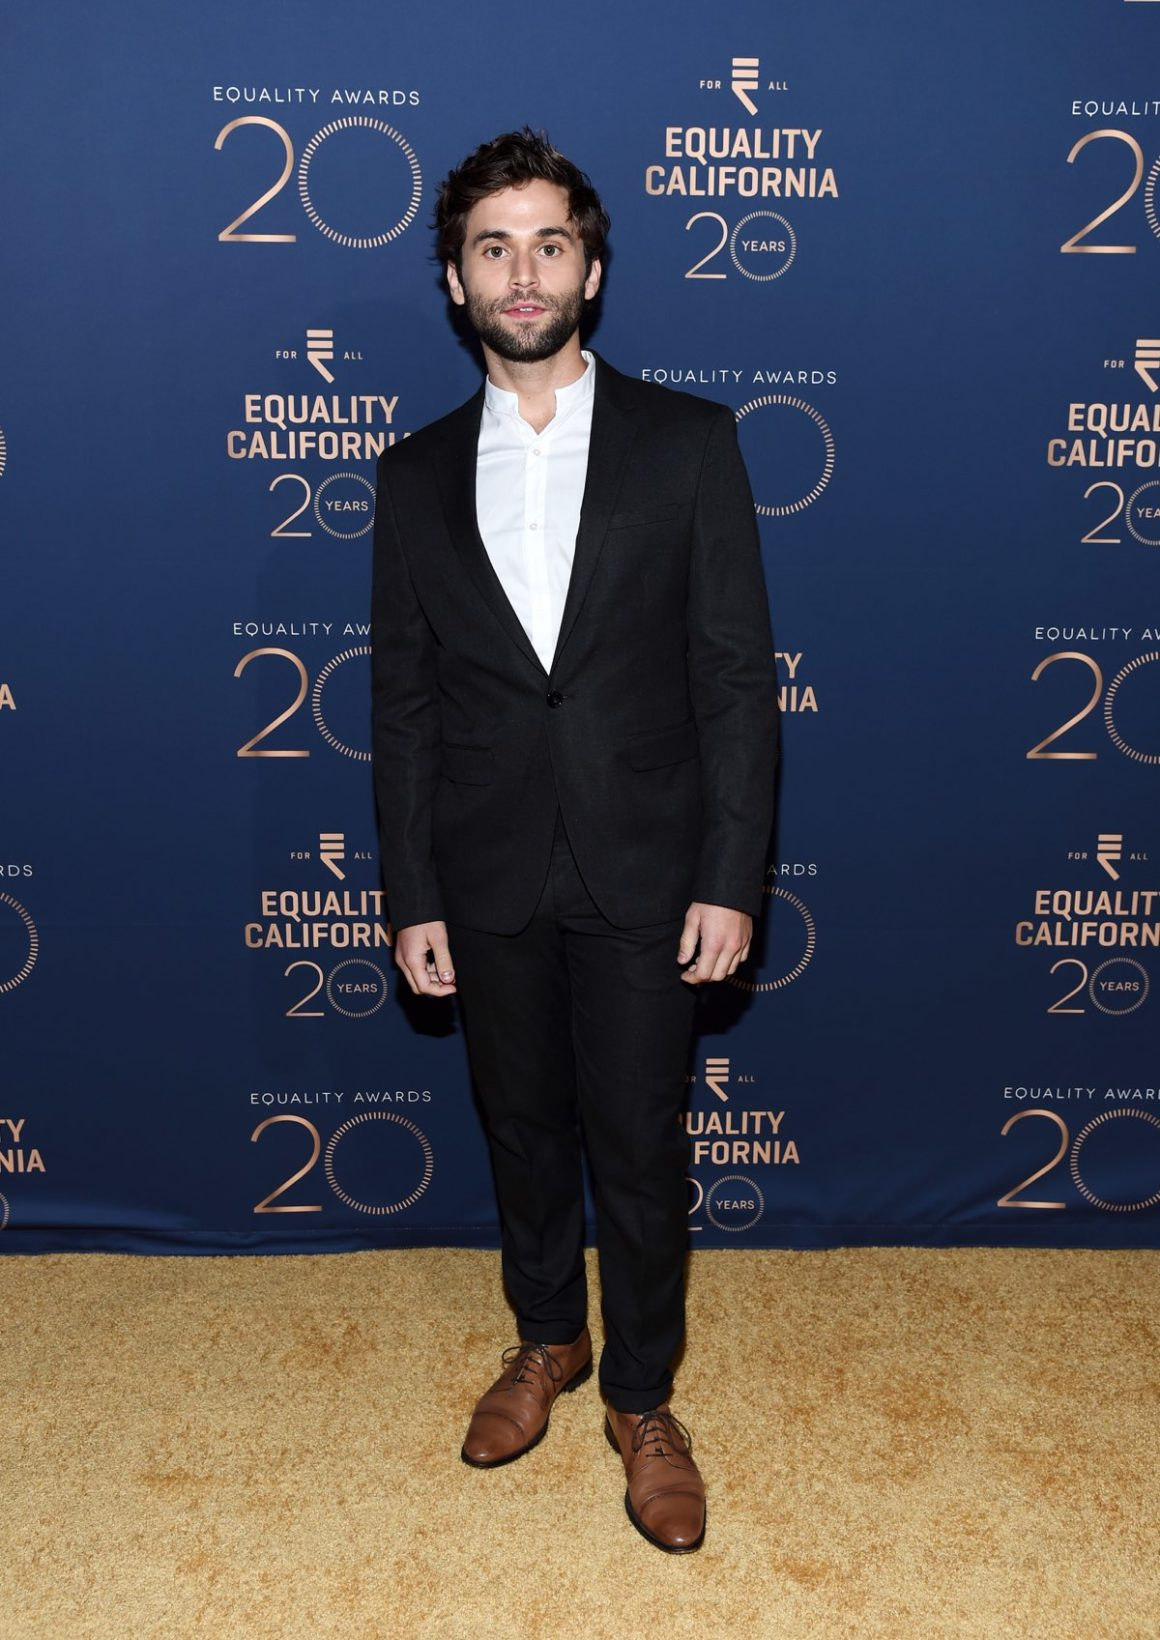 Equality California Los Angeles Equality Awards 20th Anniversary - Arrivals